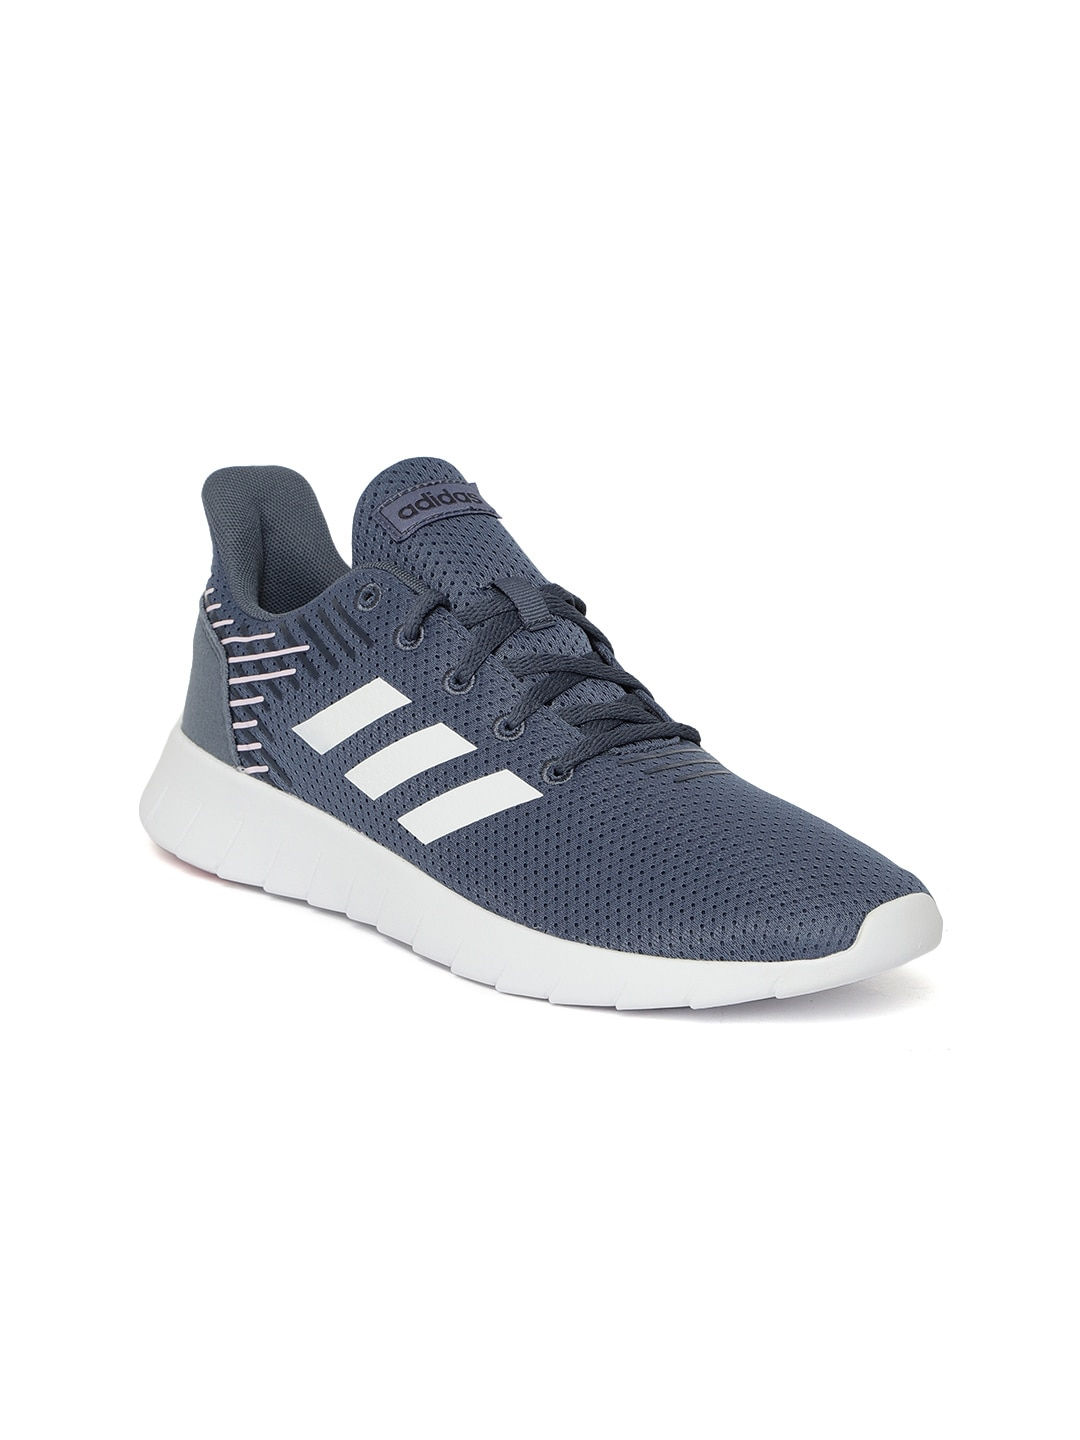 467ff4dd37e1 Women s Adidas Shoes - Buy Adidas Shoes for Women Online in India